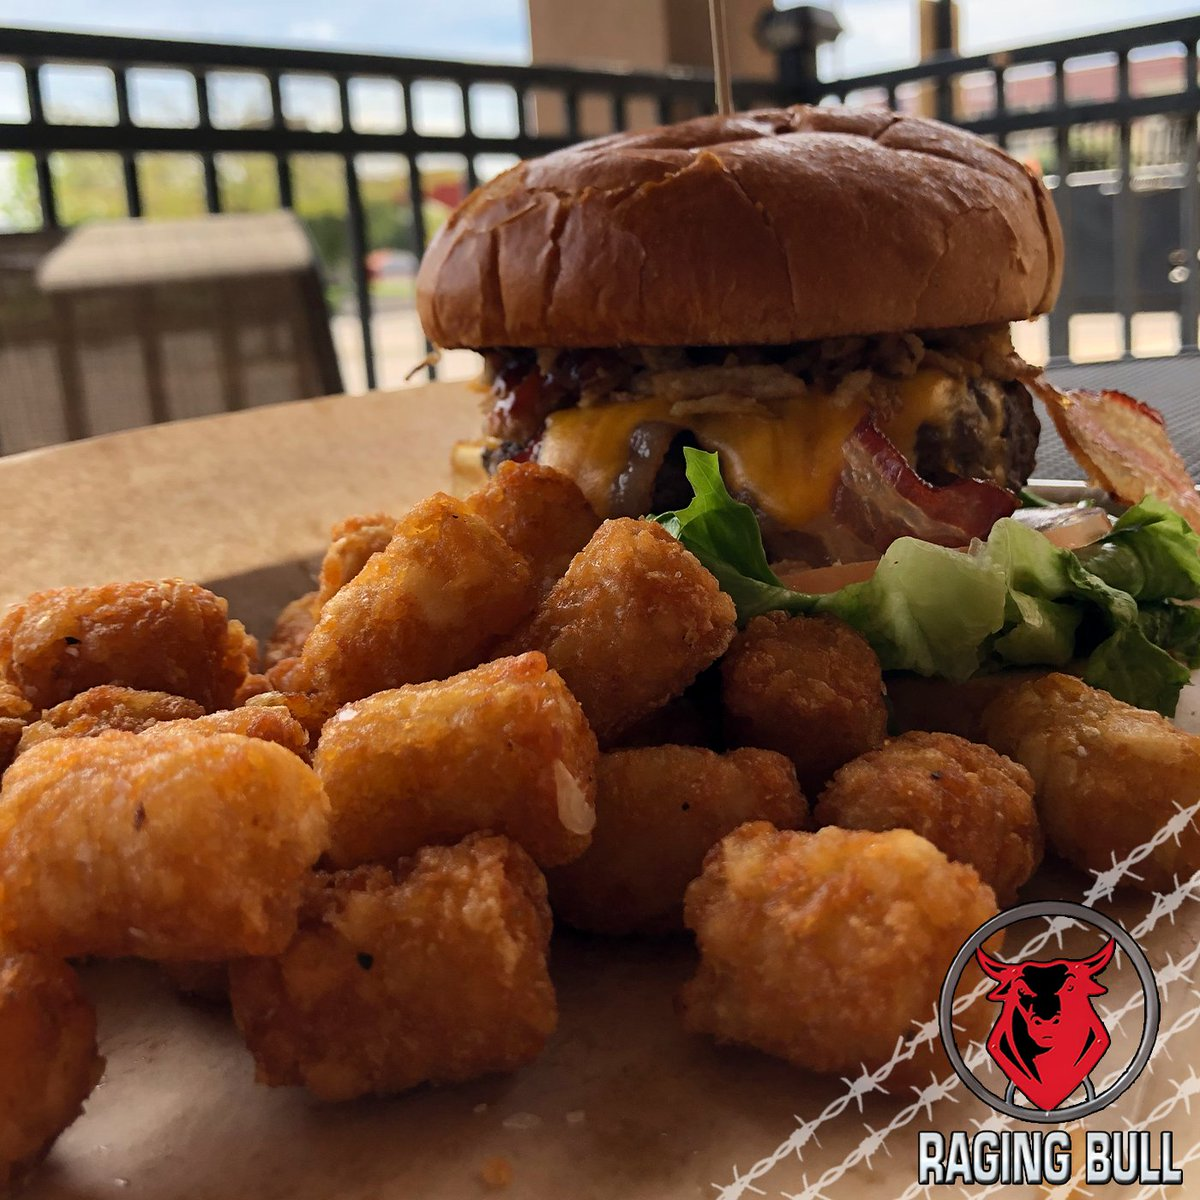 Start your #weekend off right with a #delicious #burger and #tatertots🍔🥔